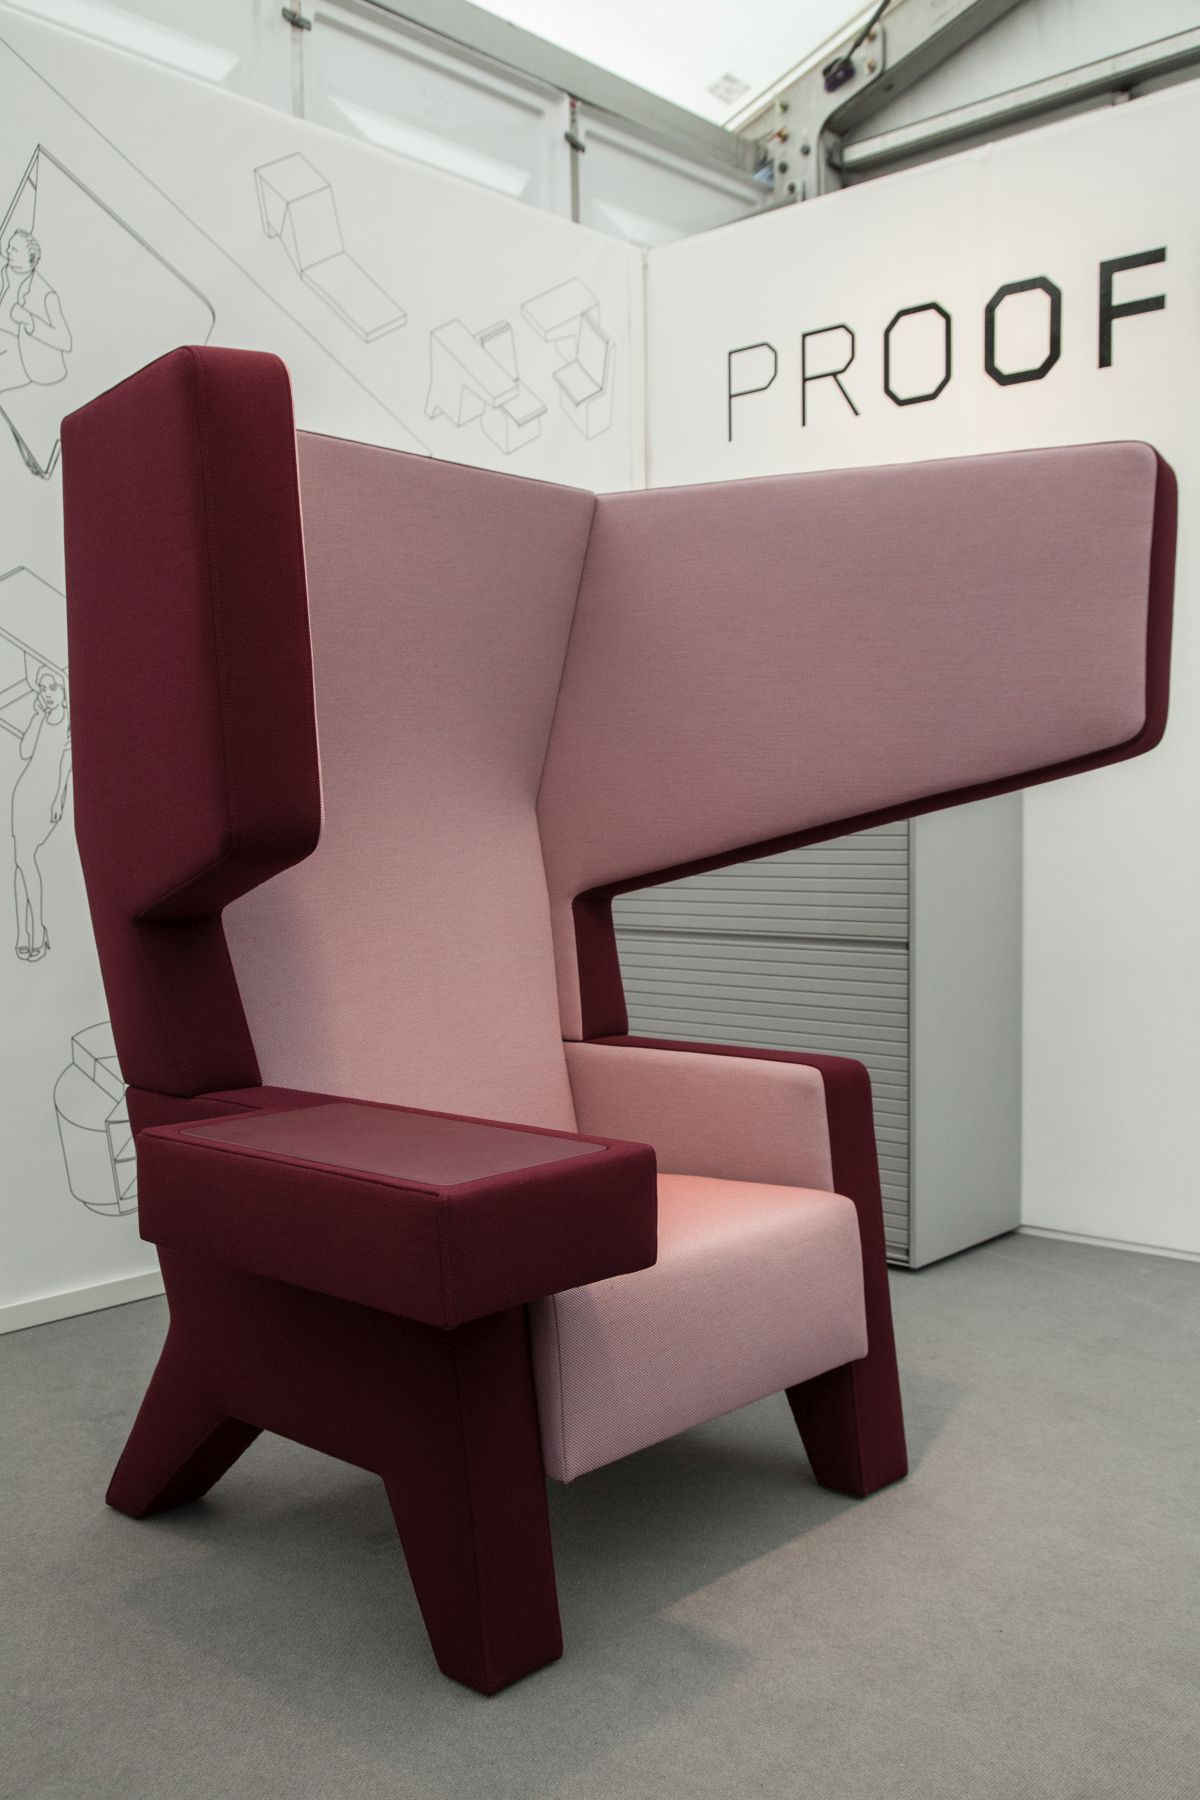 earchair-models-privacy-design